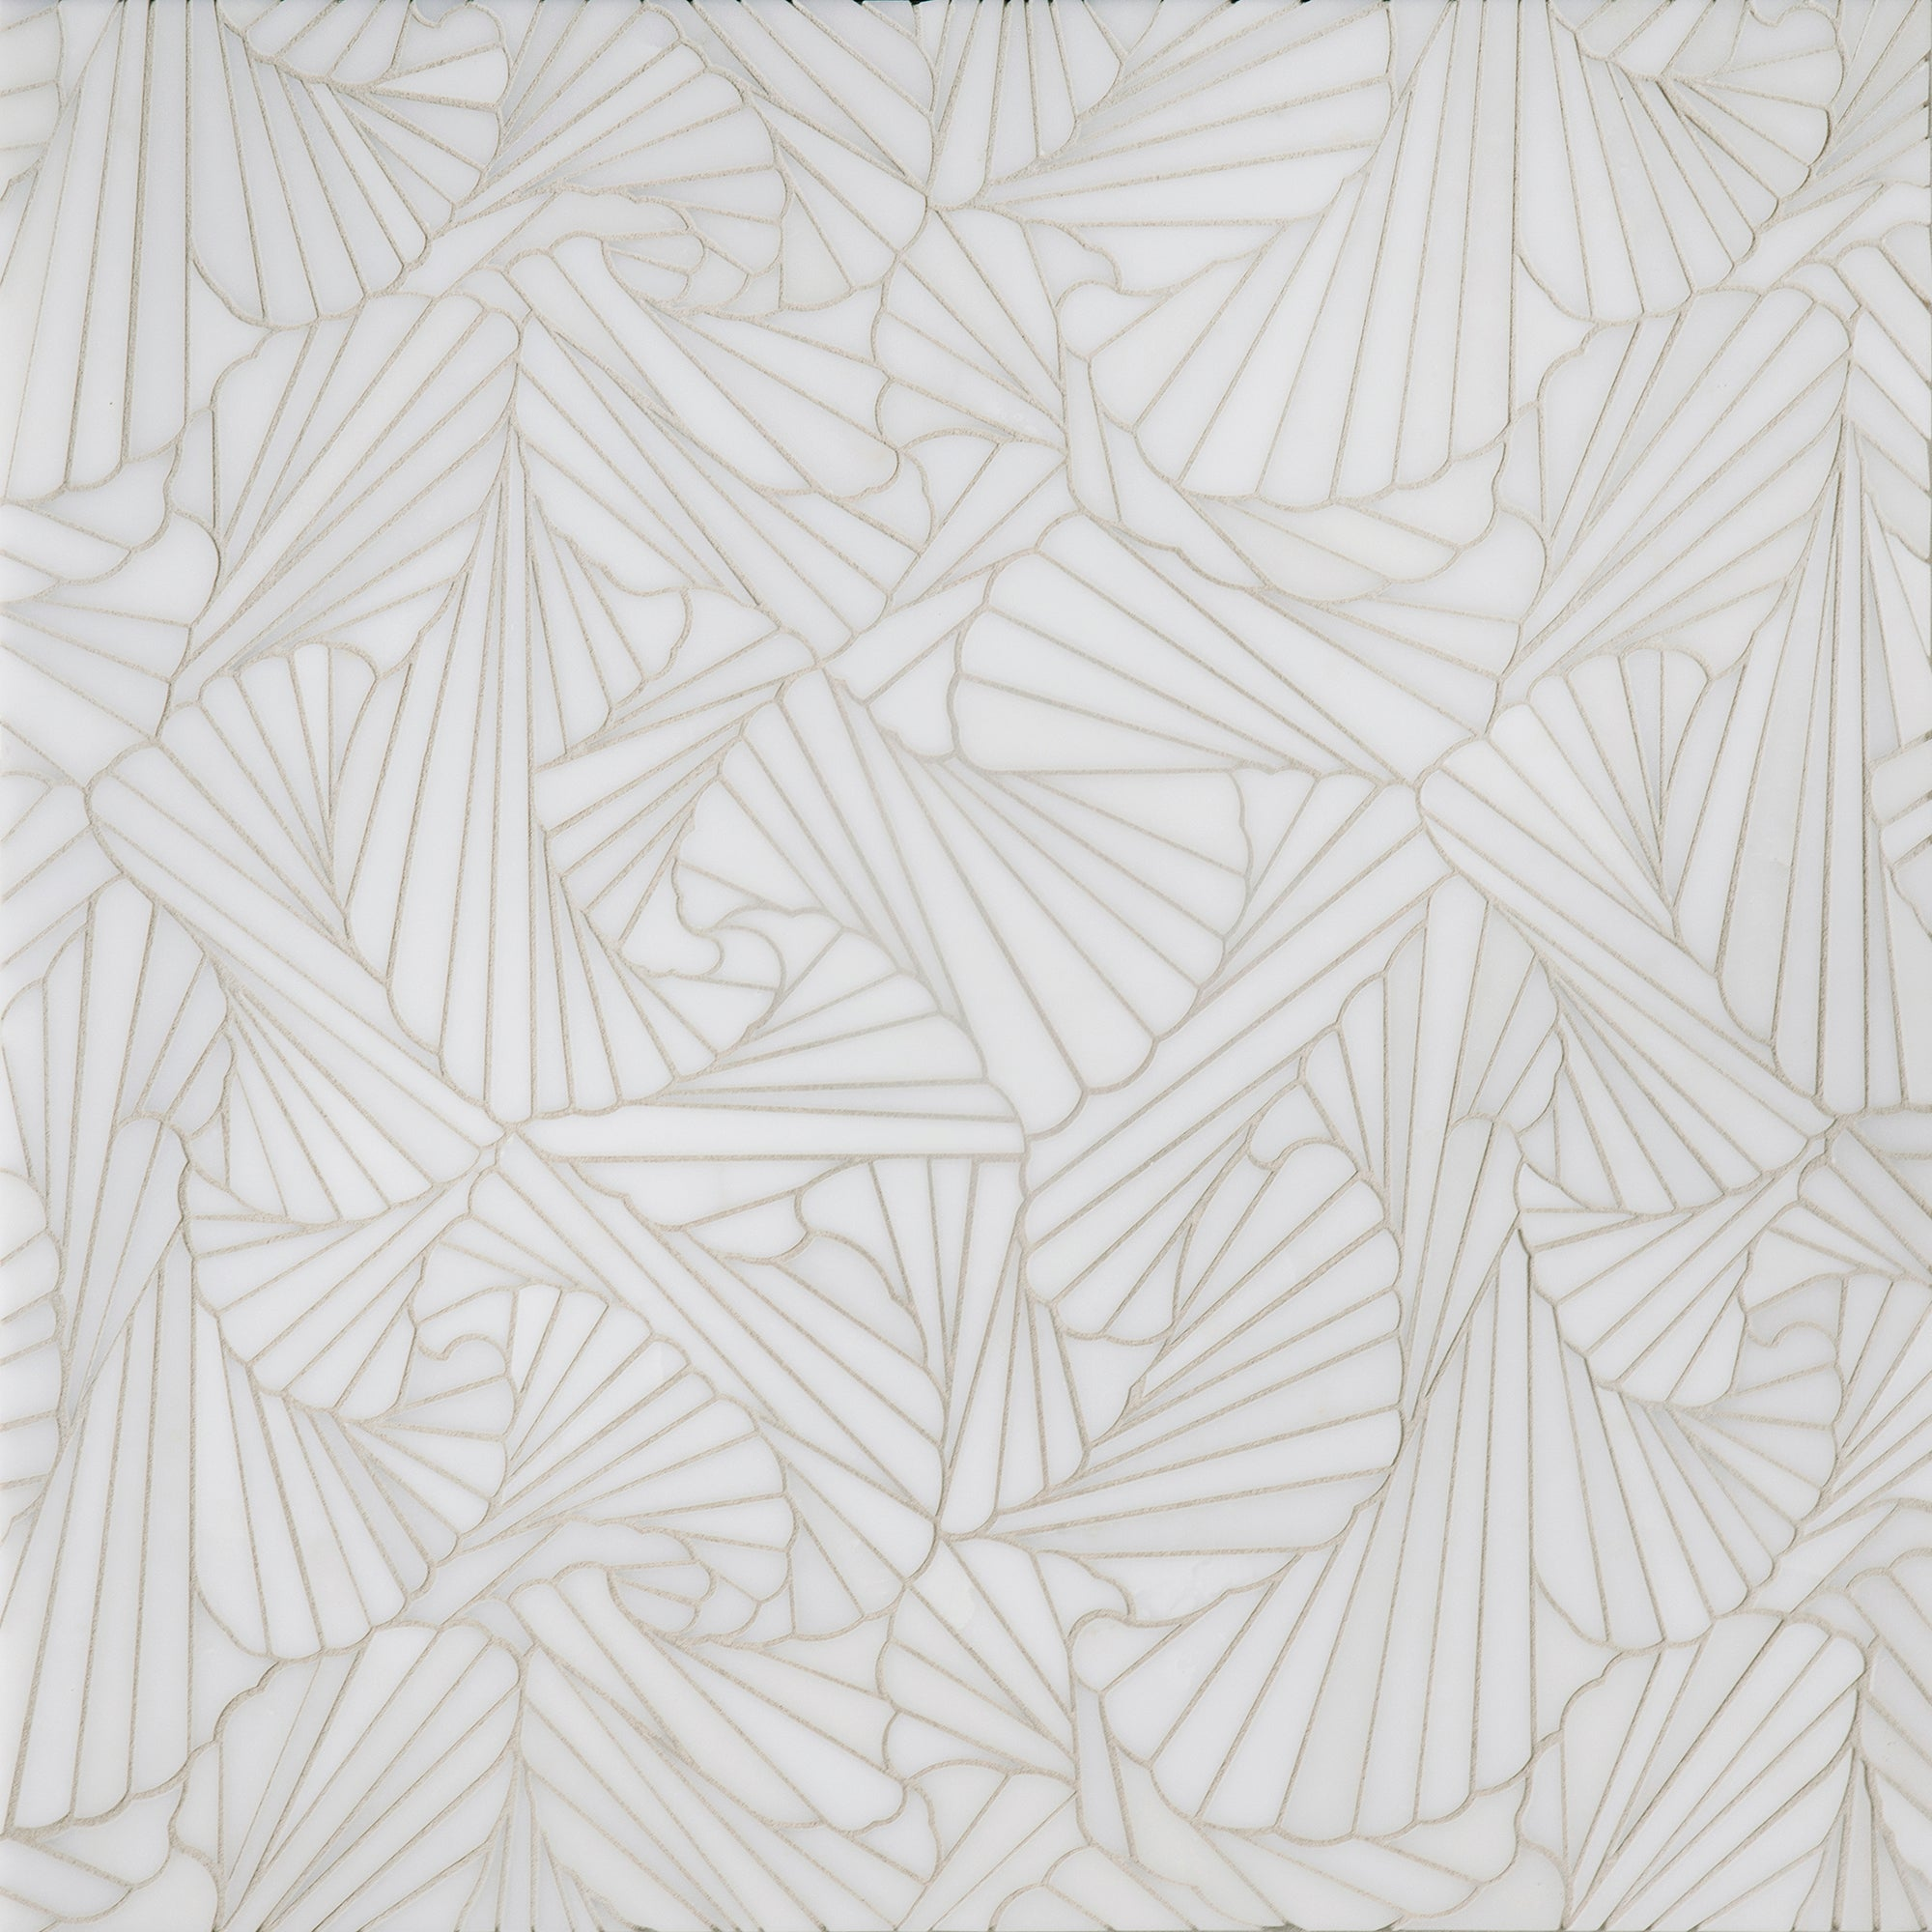 Origami Alta White Marble WJ Mosaic  Polished Stone product photo